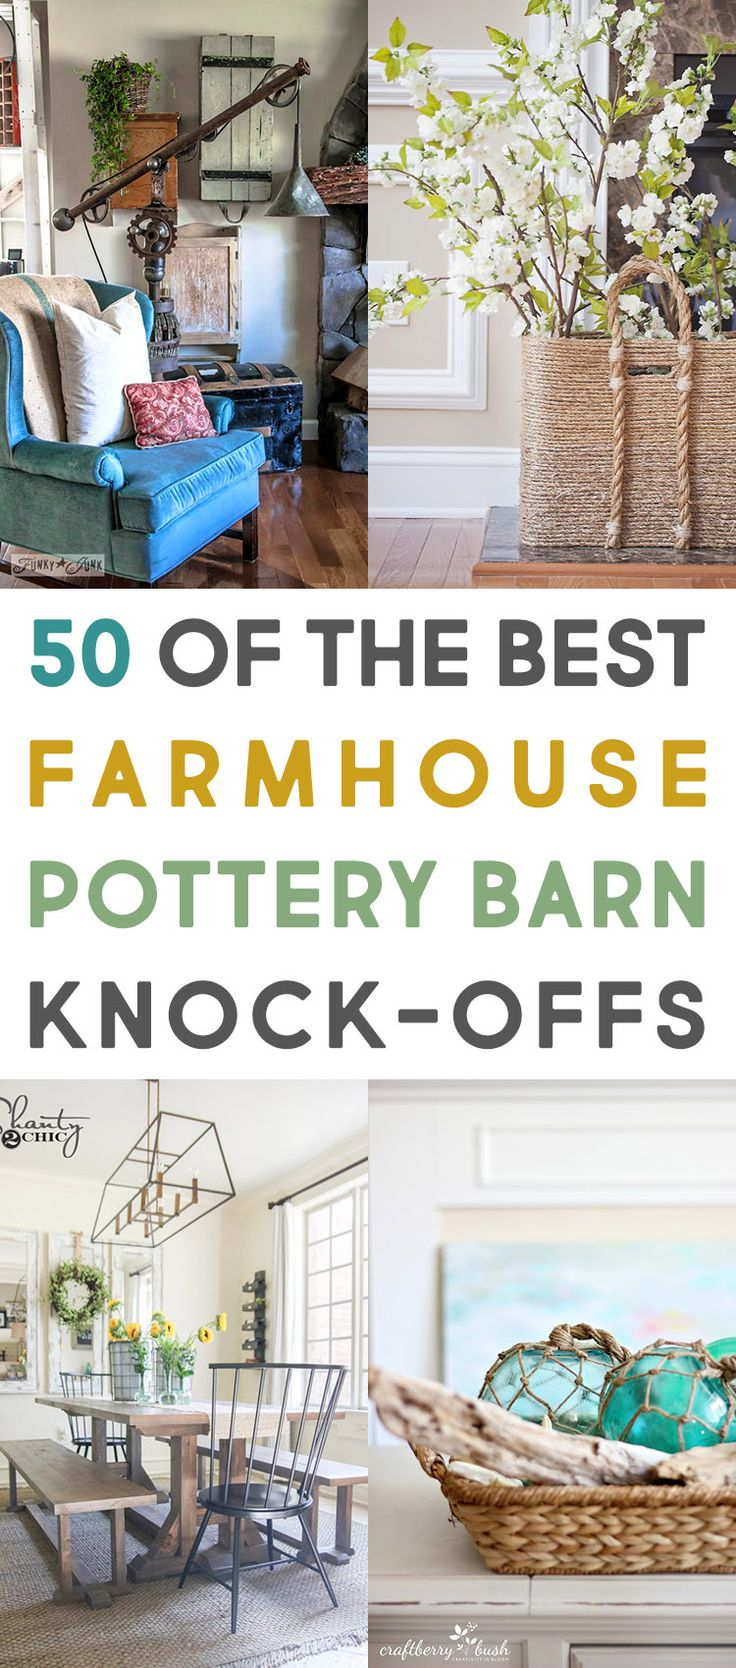 50 Of The Best Farmhouse Pottery Barn Knock Offs